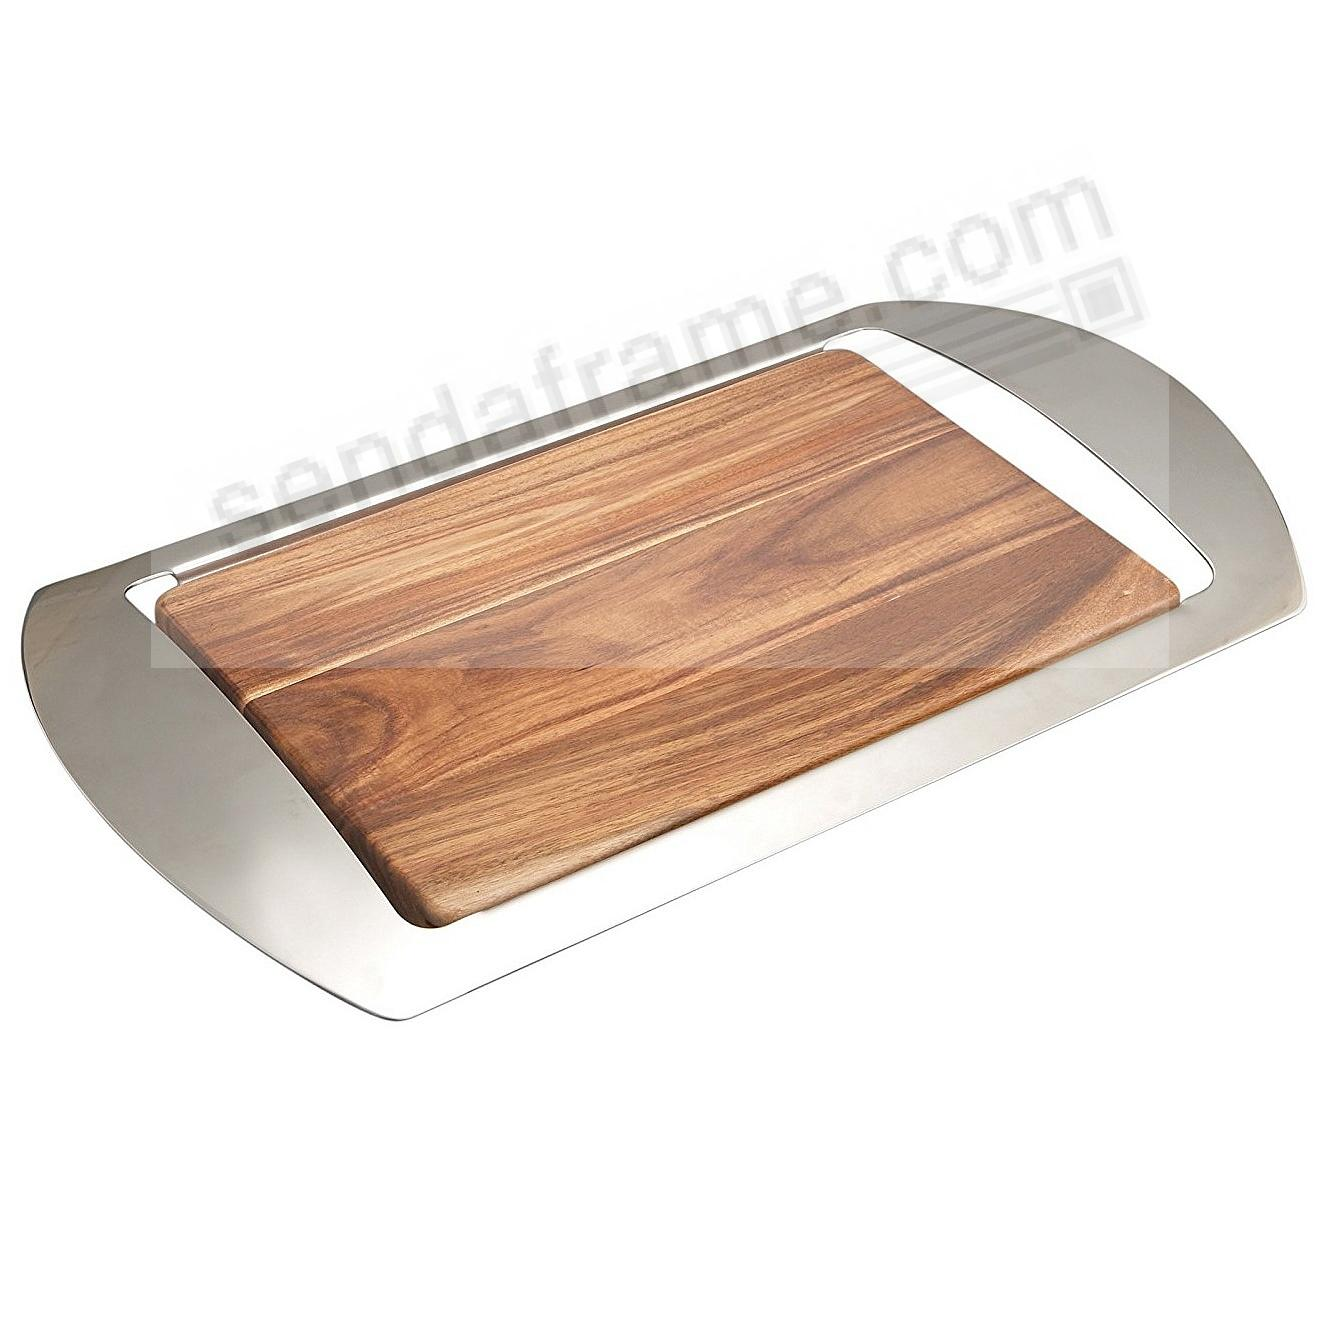 The MIKKO BAR TRAY crafted by Nambe®